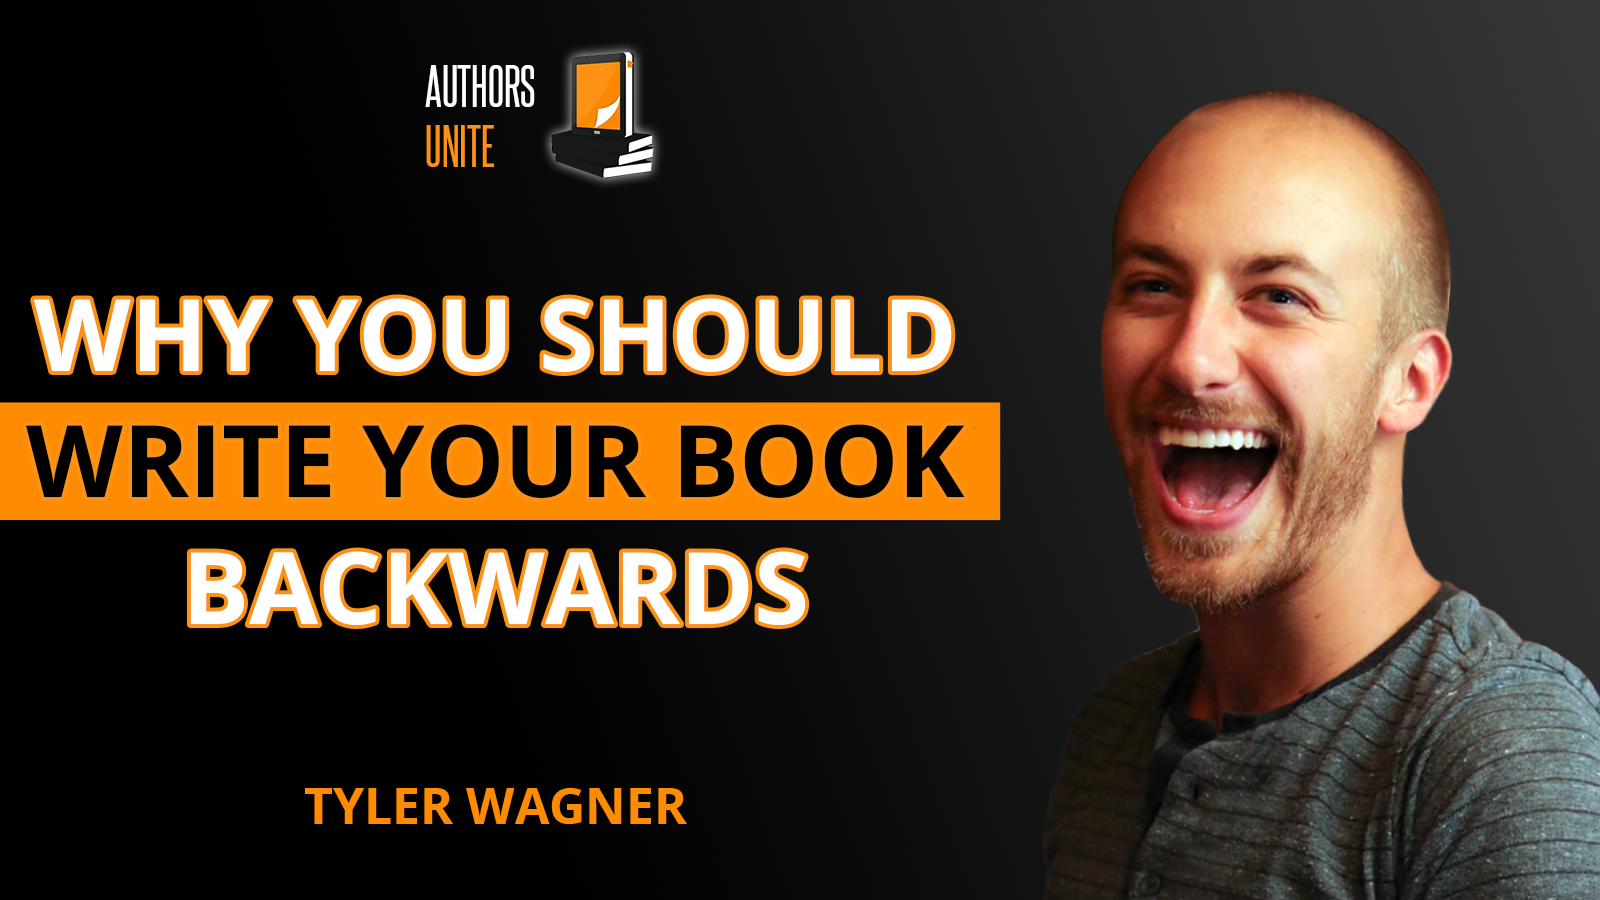 Why You Should Write Your Book Backwards